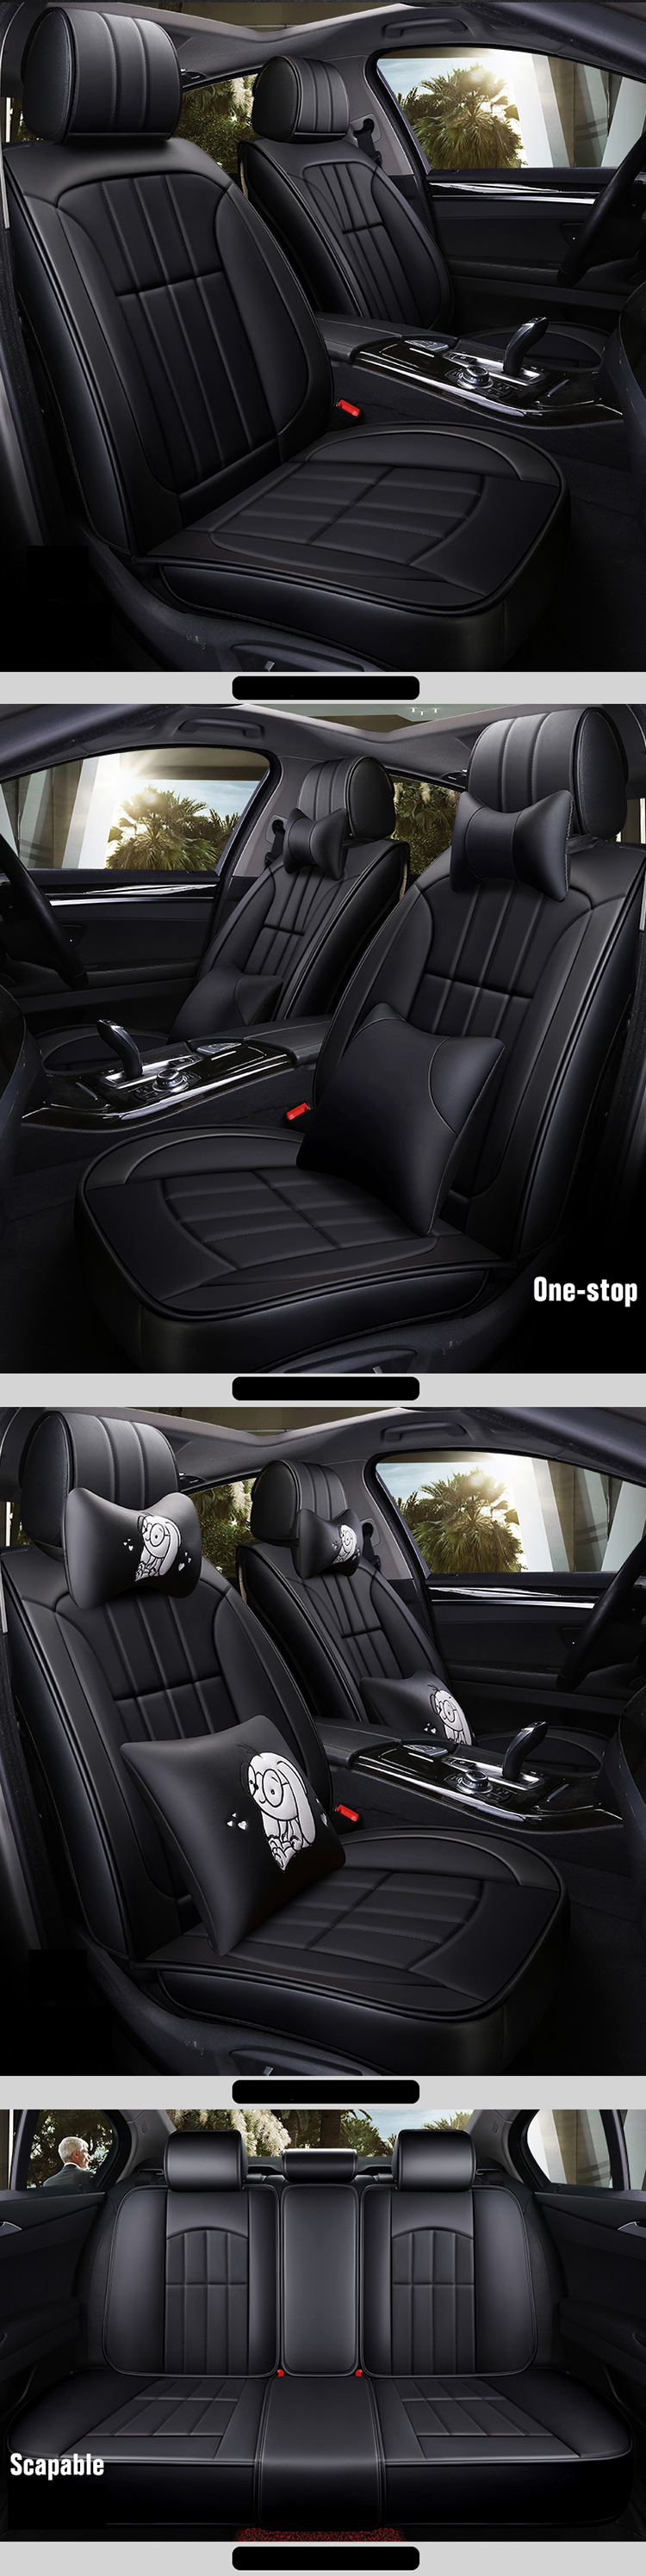 New environmental material car seat covers luxury / car seat covers for women